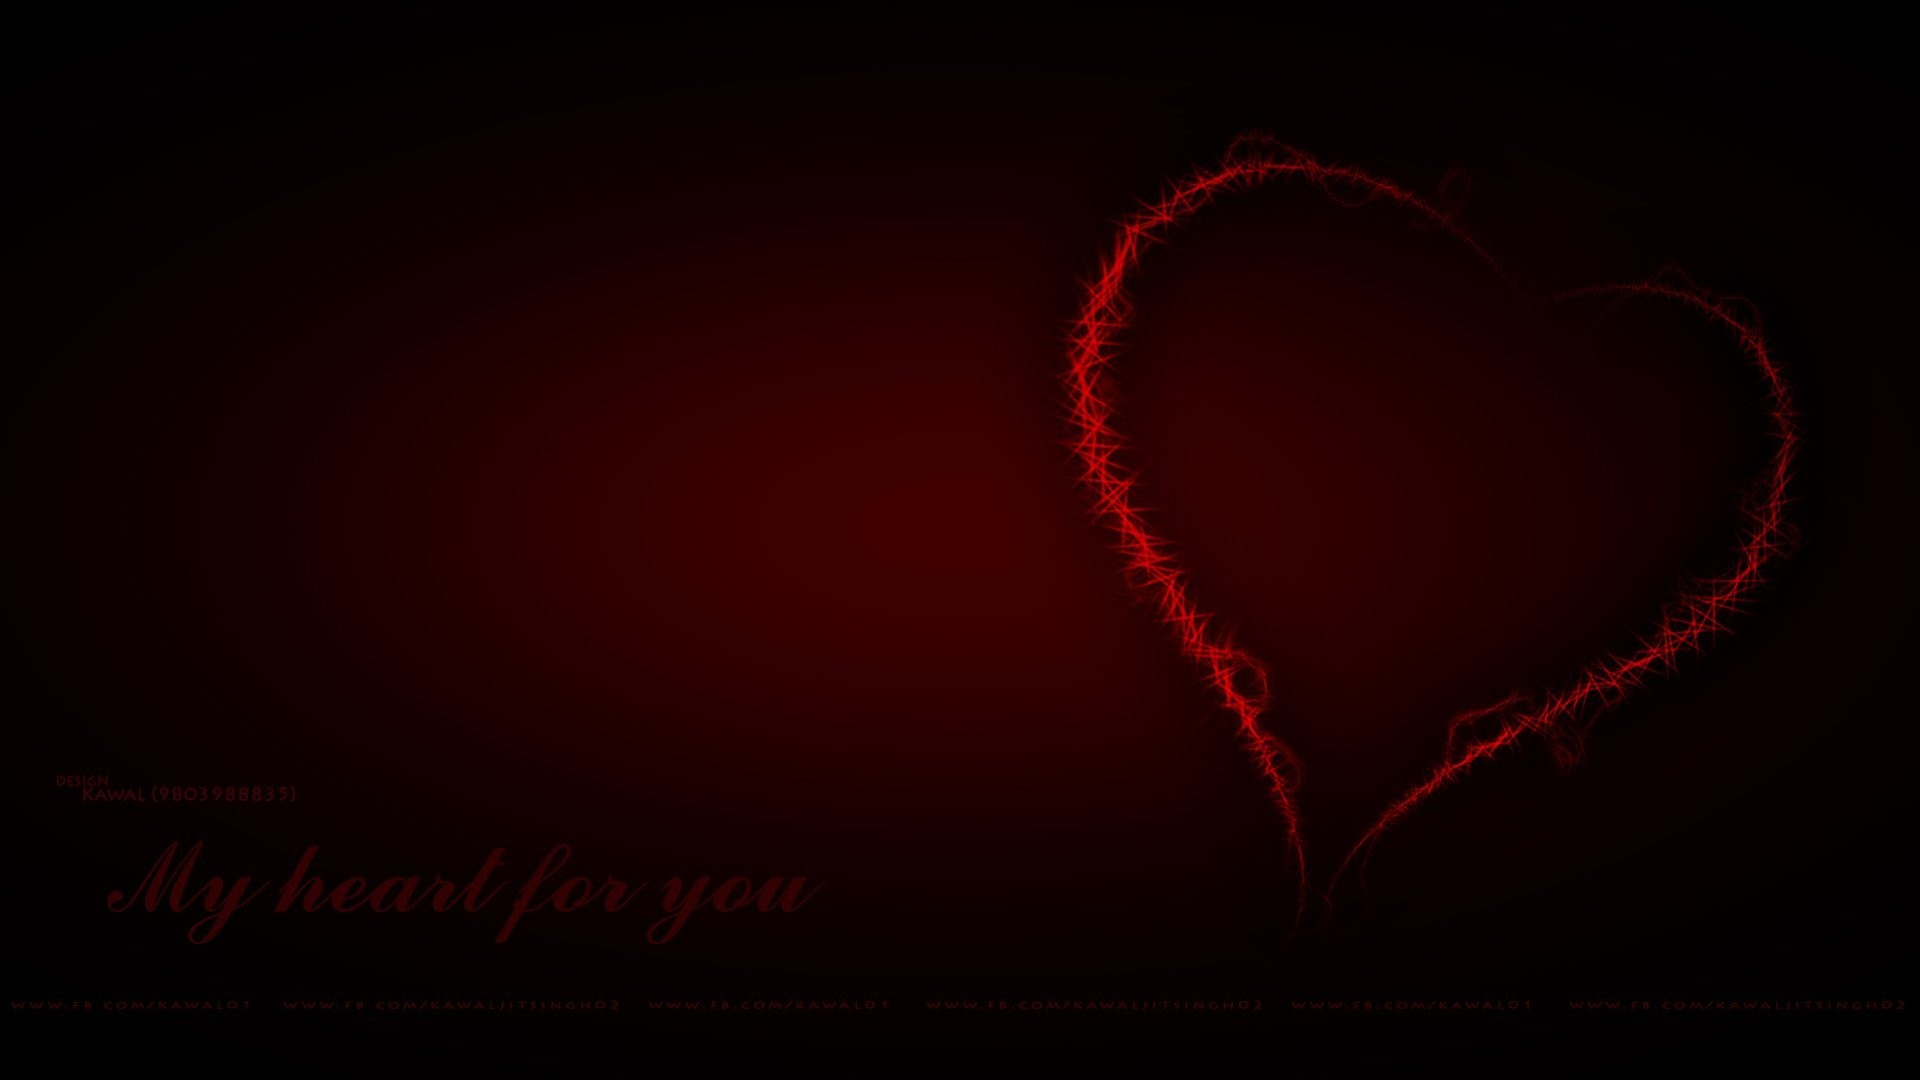 heart my heart red heart wallpaper hd kawal kawaljit kawaljit singh download